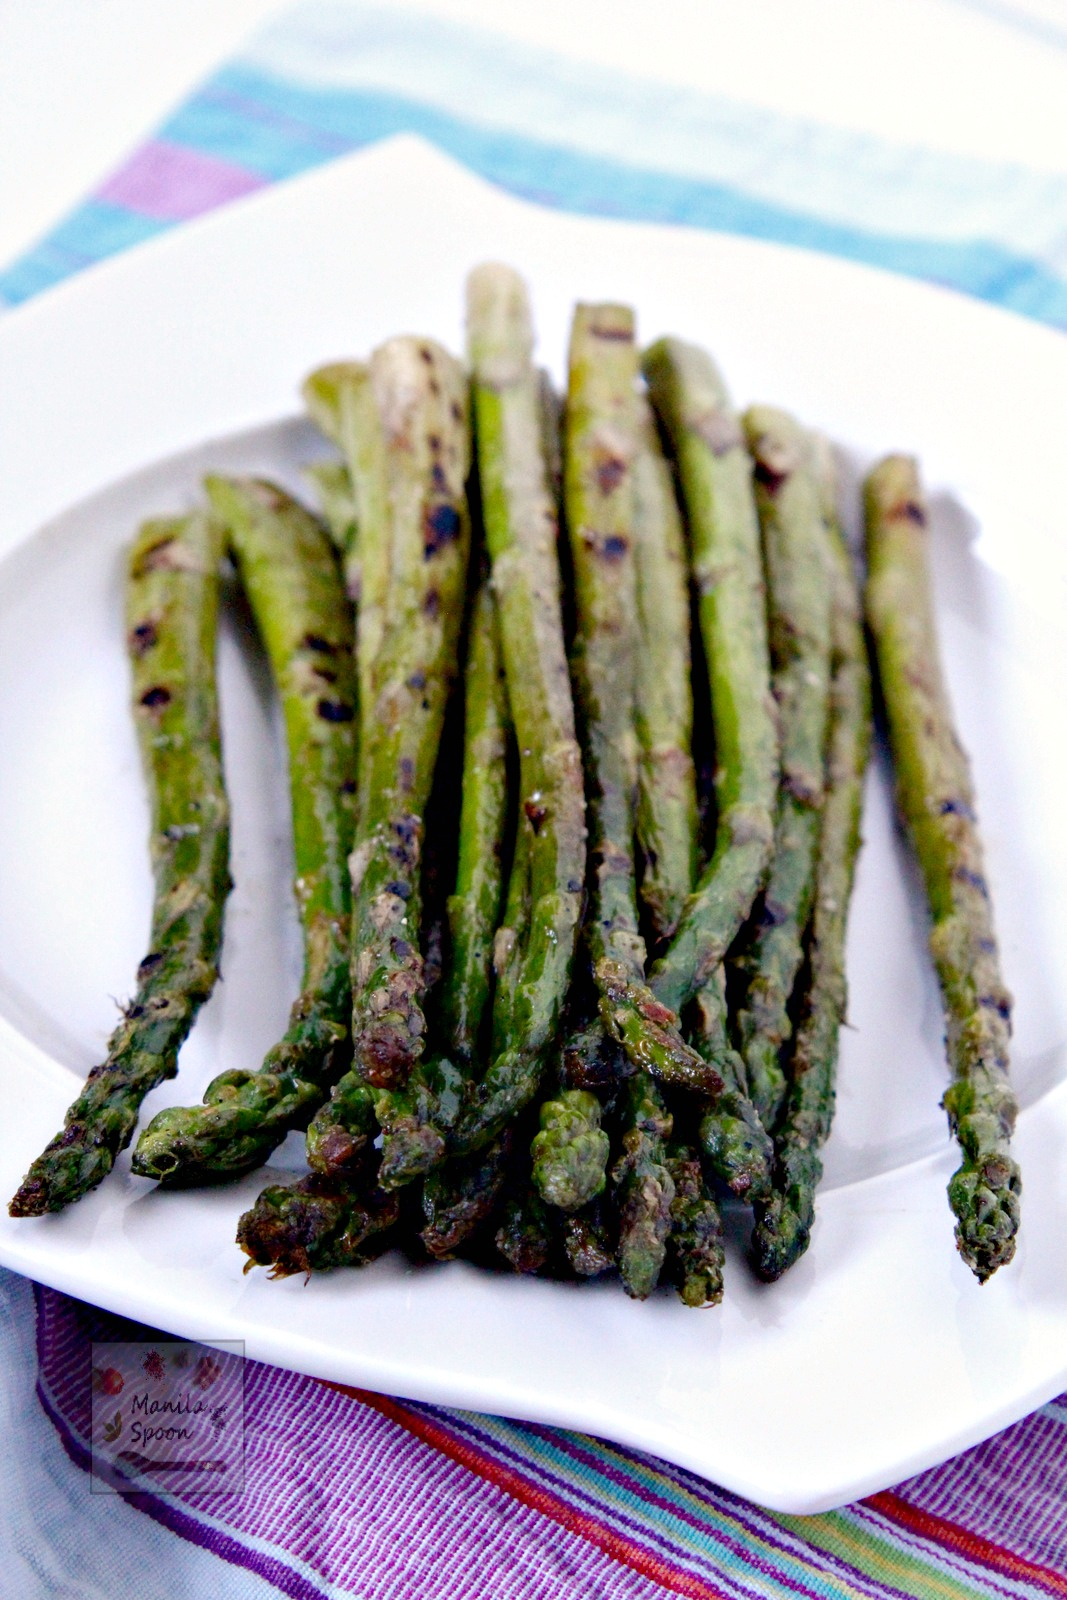 Simple, delicious and healthy, this easy grilled asparagus takes less than 5 minutes to make! | manilaspoon.com